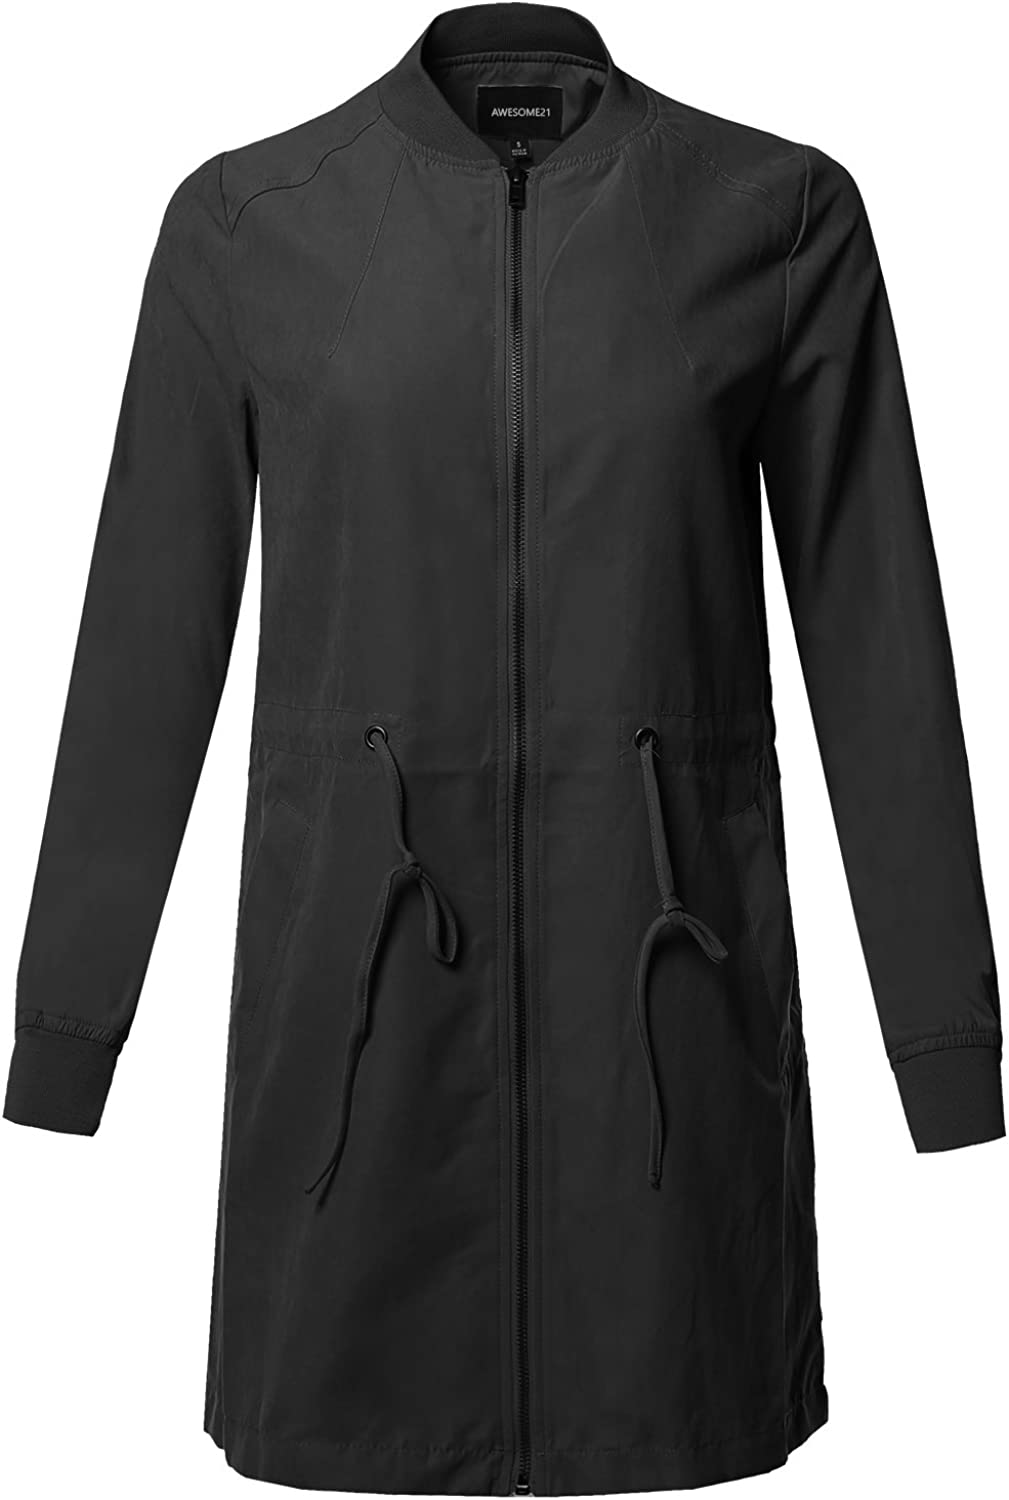 Awesome21 Women's Casual Solid Anorak Safari Zipper Closure Long Bomber Jacket